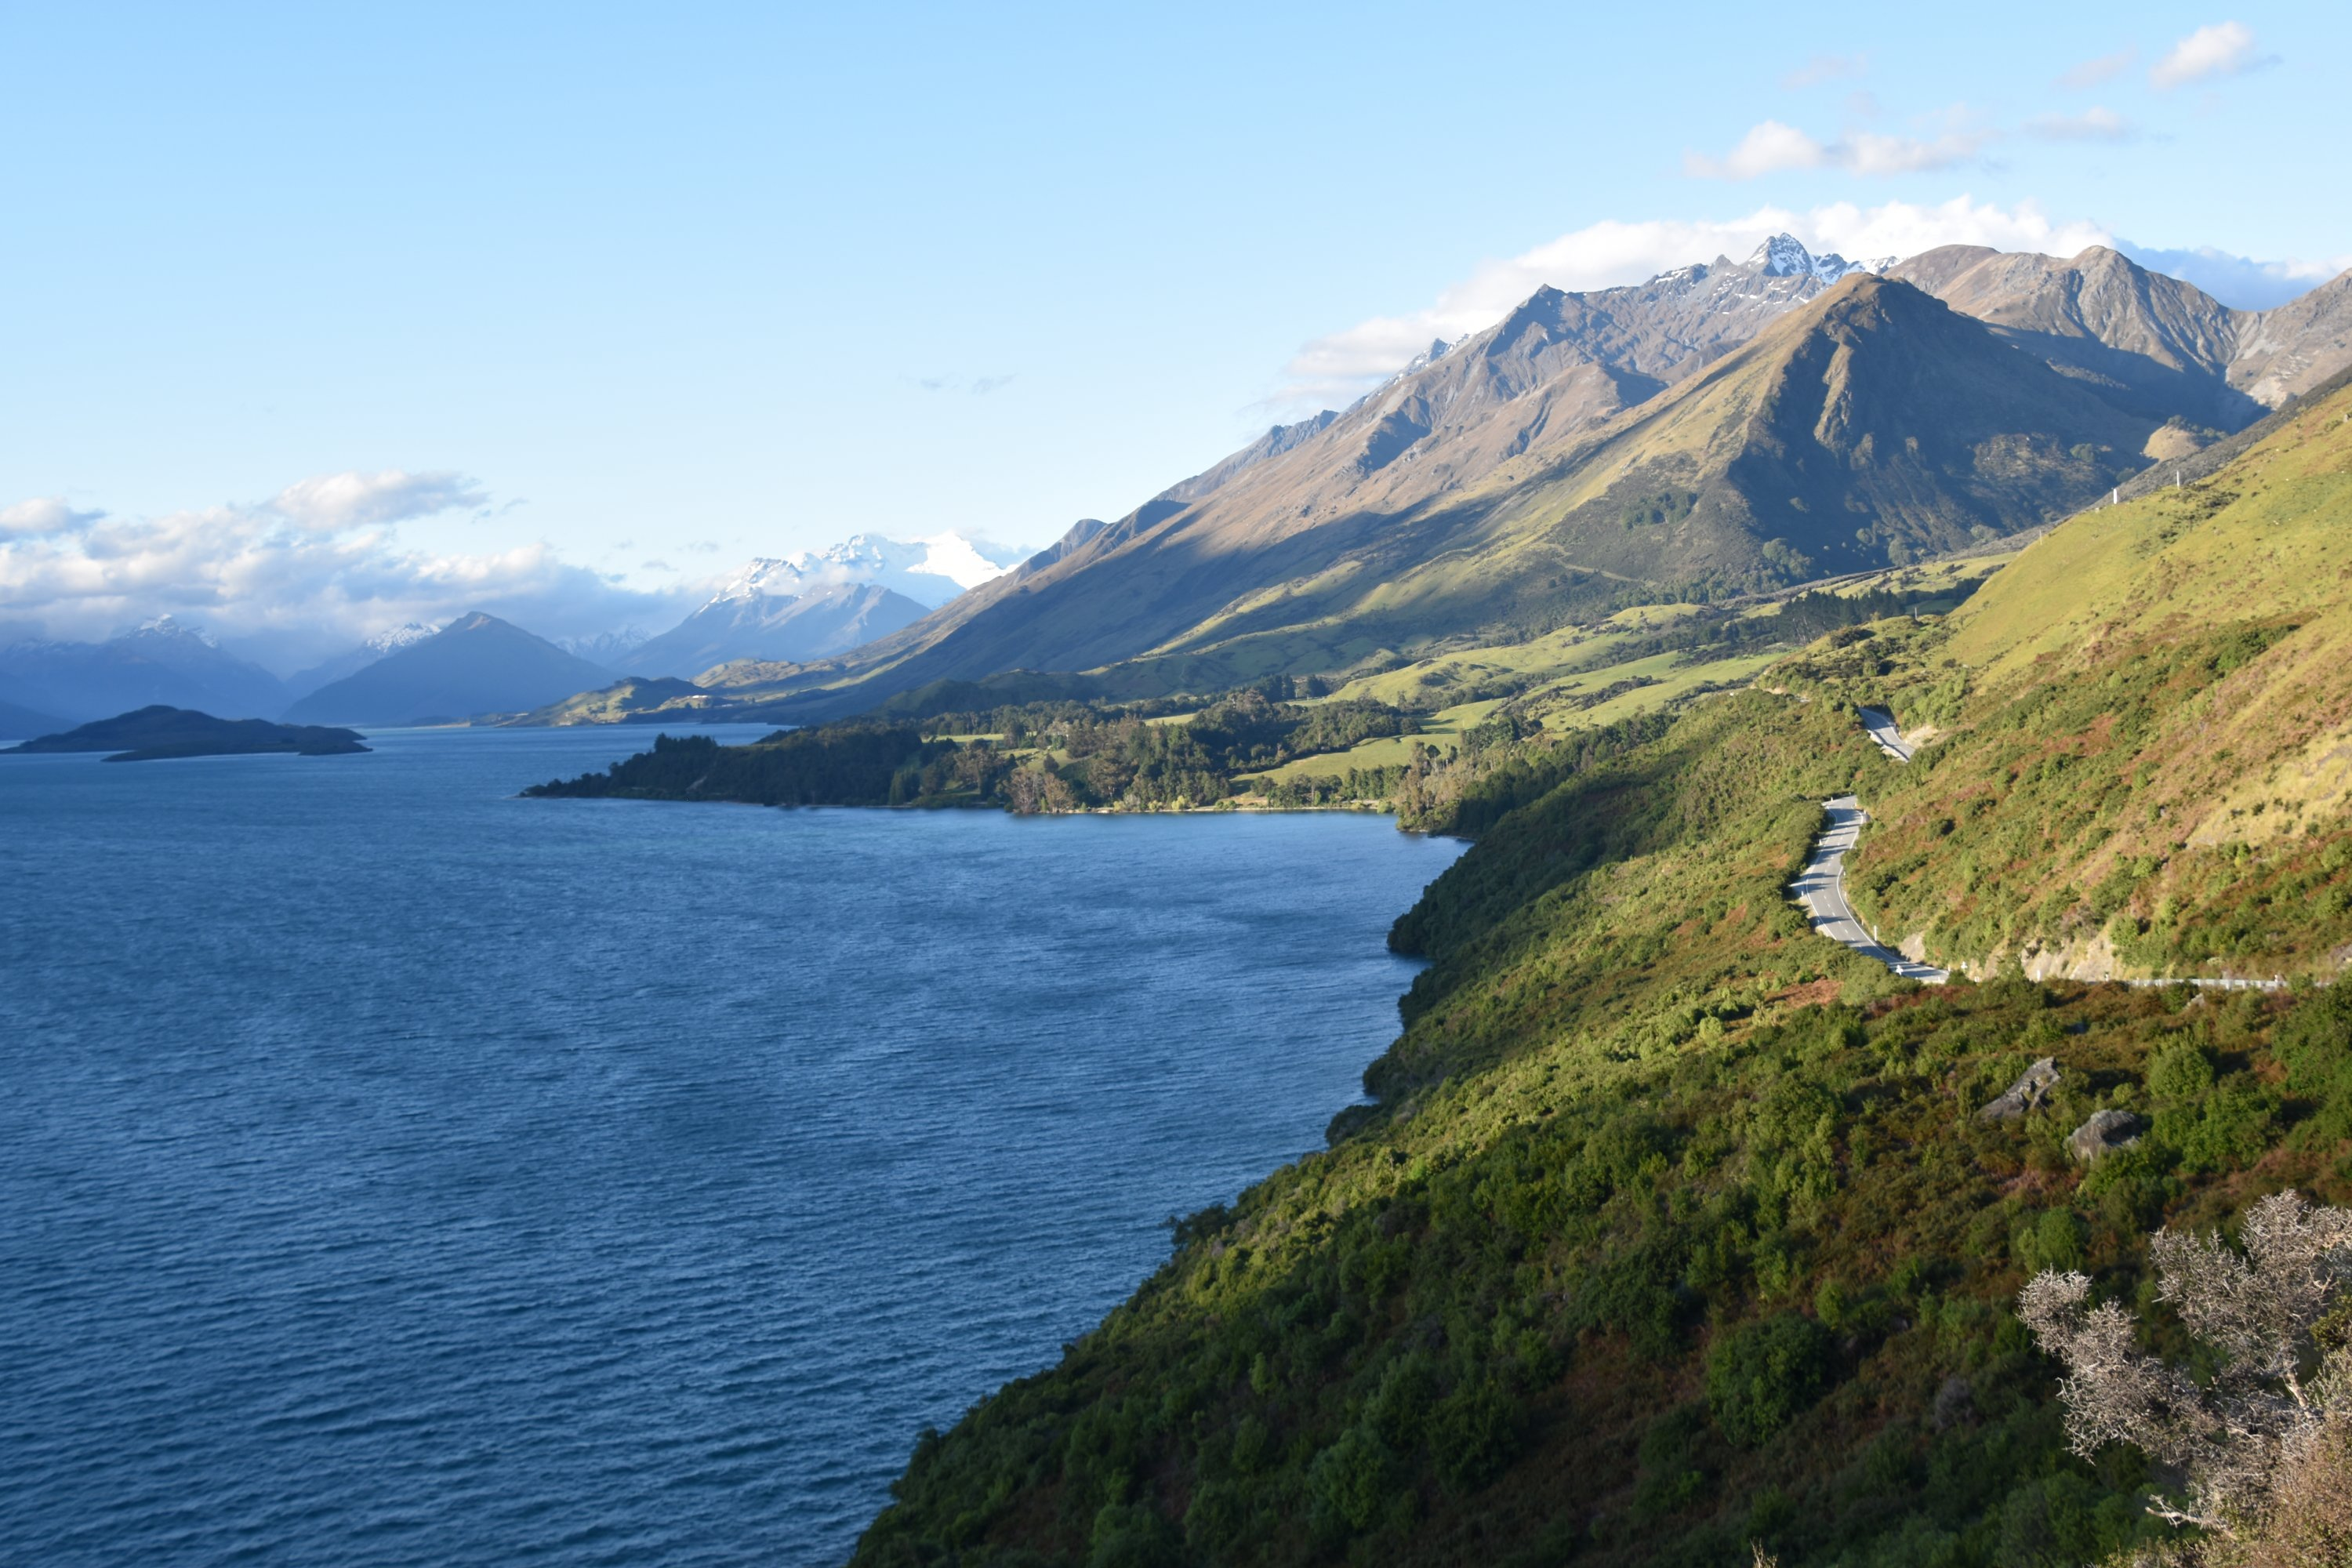 To experience New Zealand's rugged beauty, go by camper van